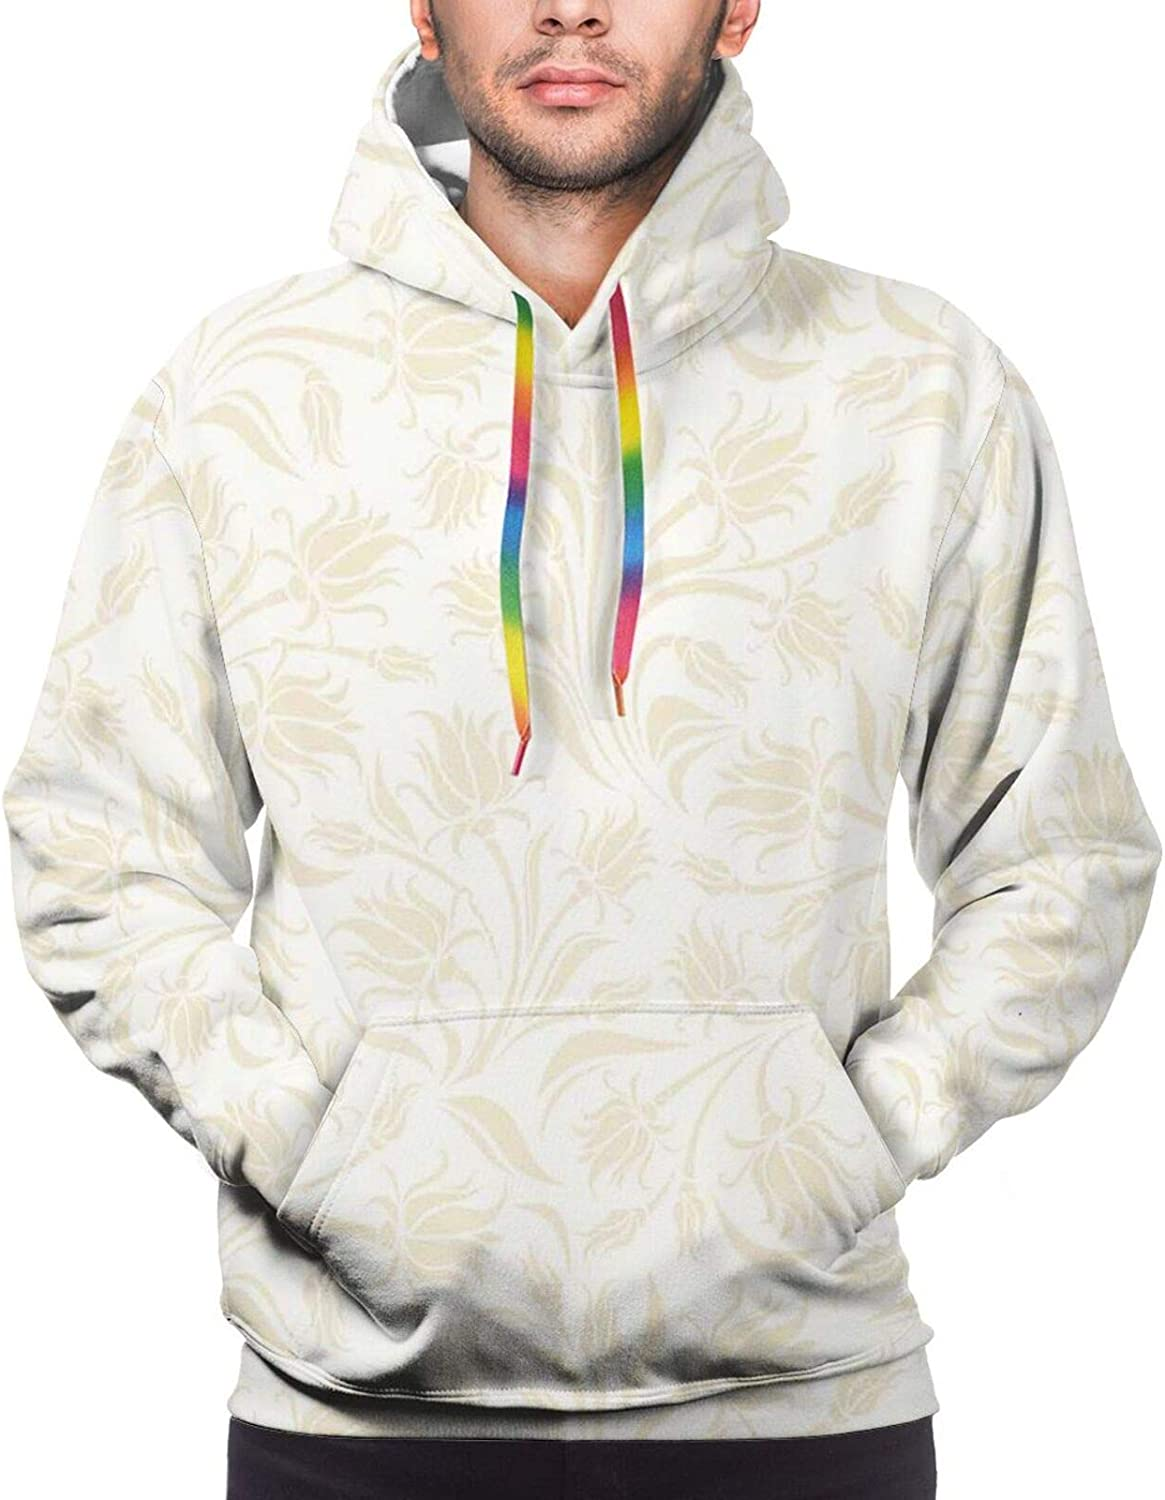 Men's Hoodies Sweatshirts,Baroque Style Curved Leaves and Floral Blooms Artistic Nature Beauty Kitsch Design Motif